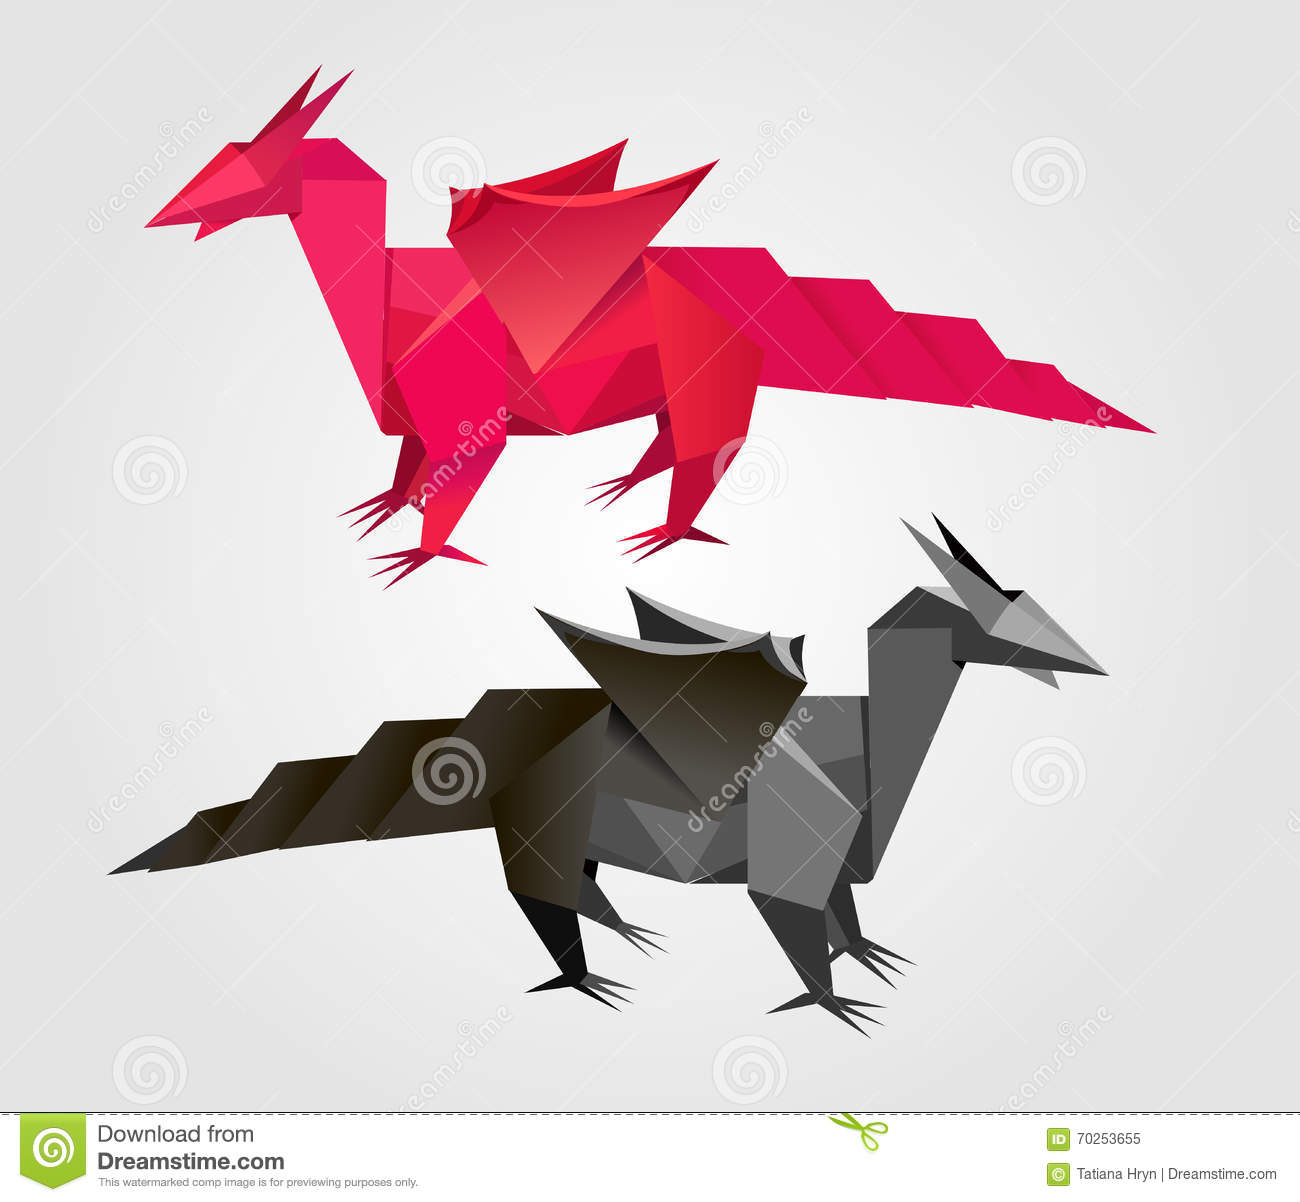 Vector Abstract Origami Dragon Stock Vector Illustration Of Flat